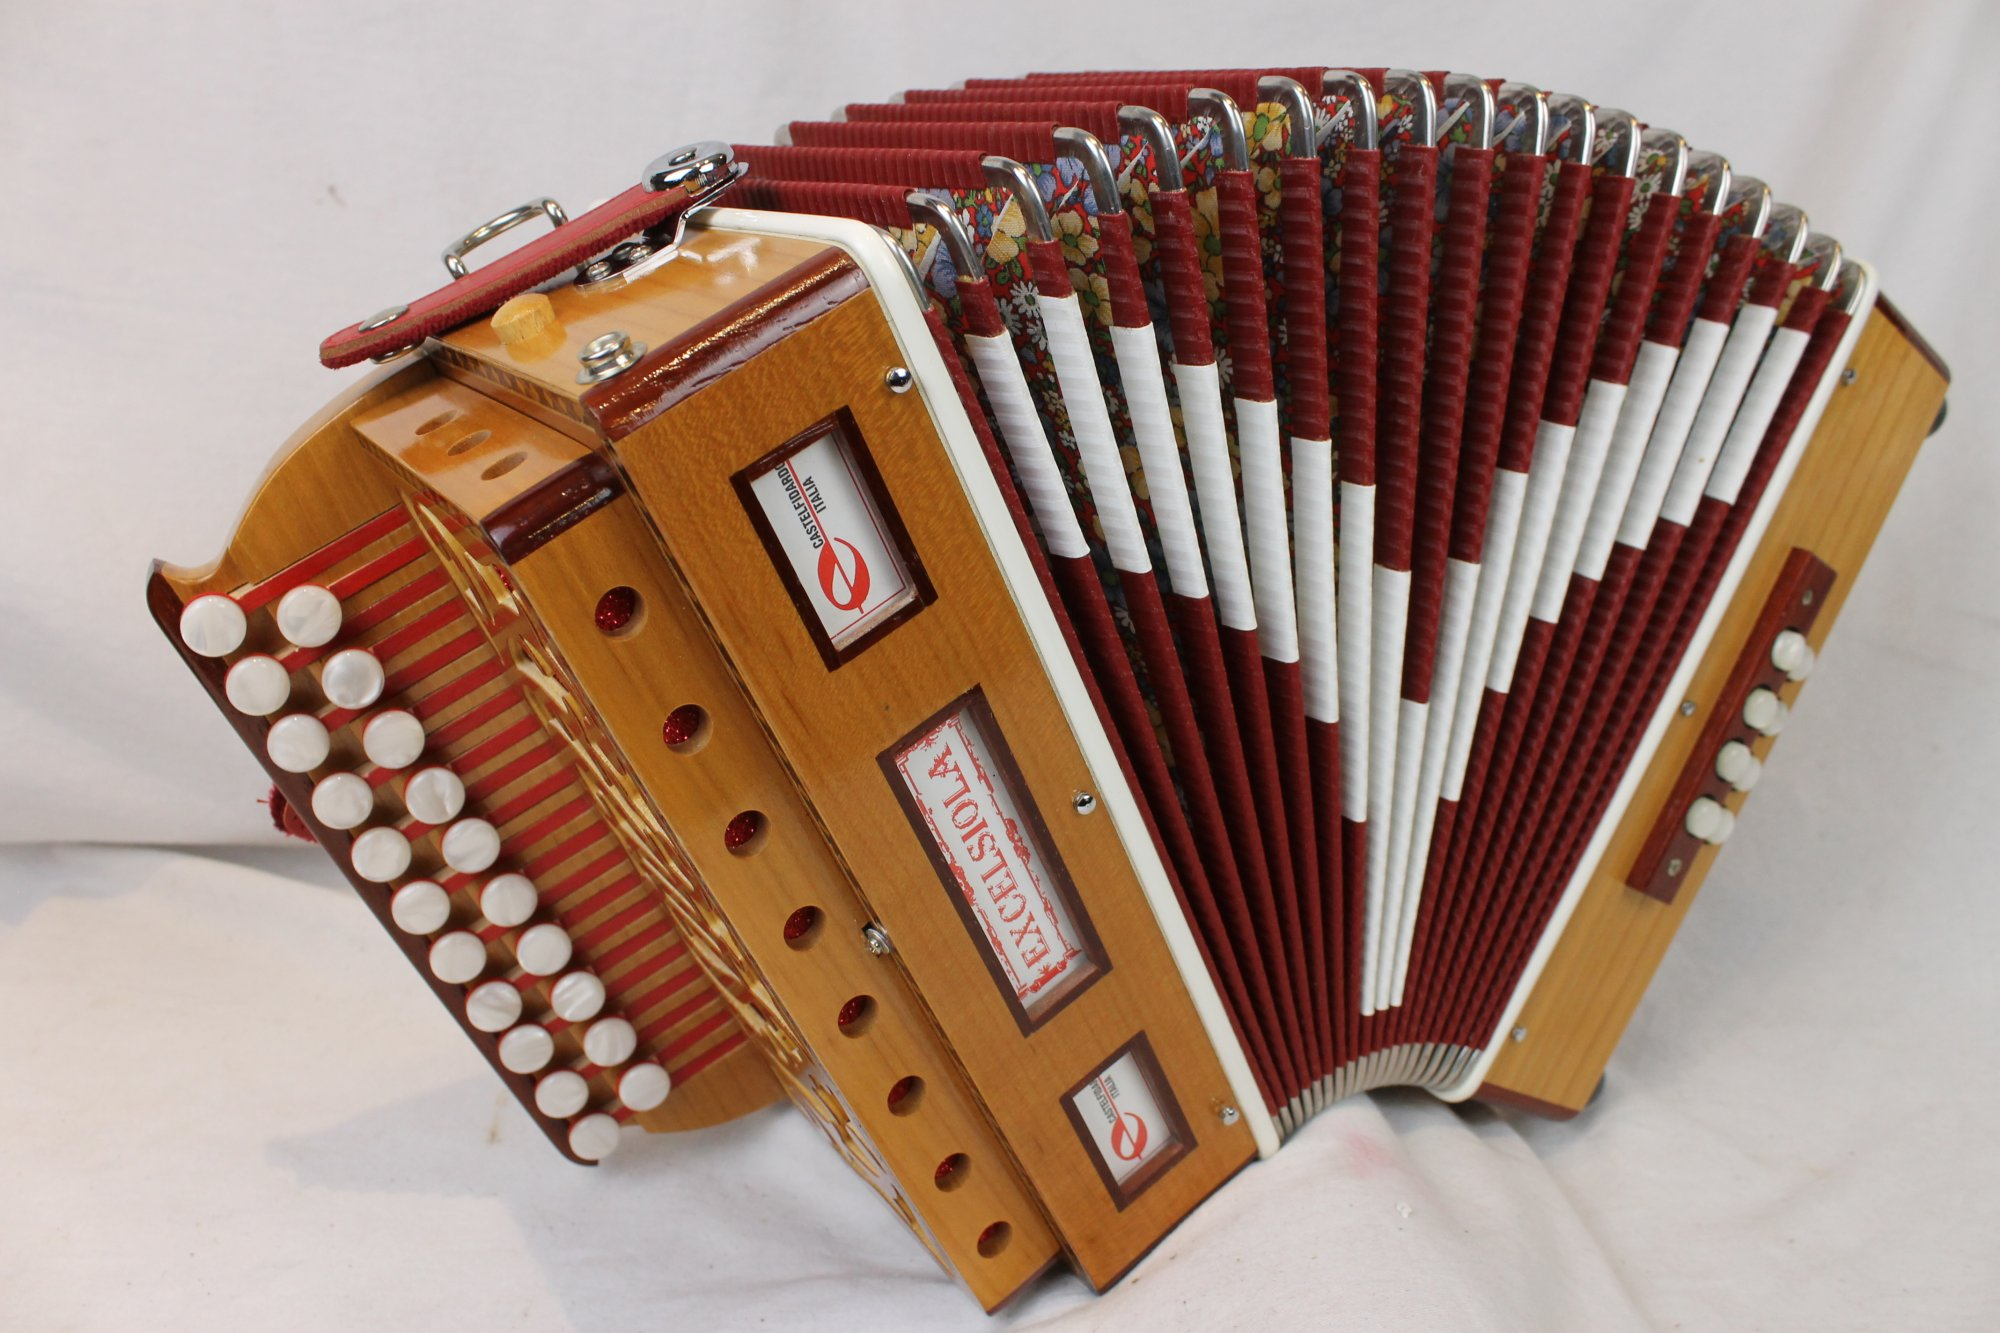 NEW Cherry Excelsior Excelsiola 8B Organetto Diatonic Button Accordion AD LMM 21 8